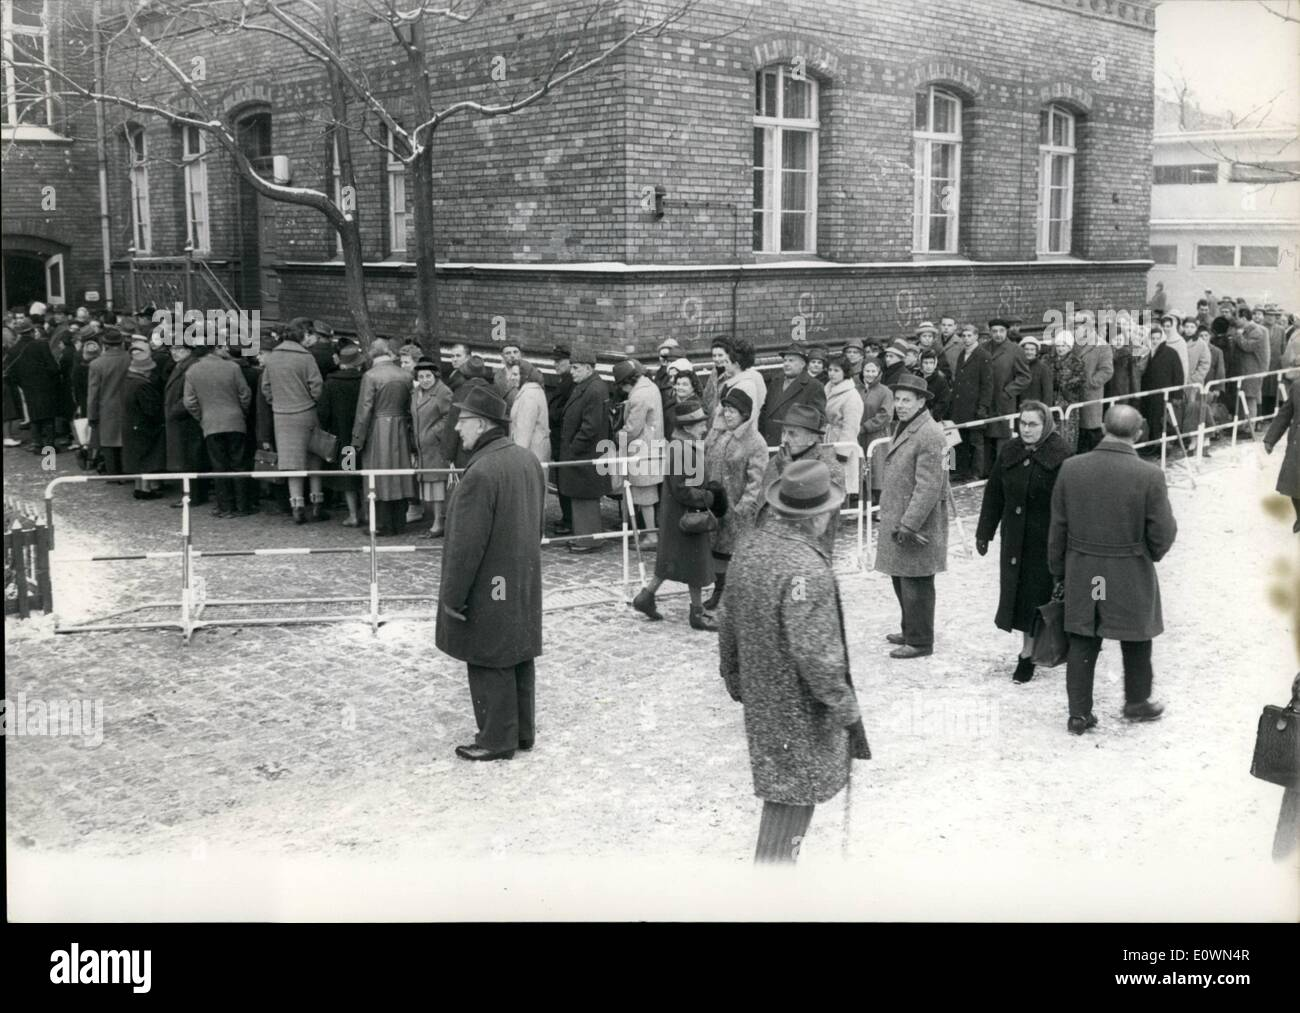 Dec. 12, 1963 - On Christmas: Passportsfor Westberliner to Eastberlin. Today (18.12.) in the early morning hours mant people comes to the points in the Westberlin school where they can get the passports to see their relations in Eastberlin. The passport points opened in the noon at 13.00 hours. OPS: Many people are waiting before the Breiteheid School in Berlin Tiergarten. Stock Photo